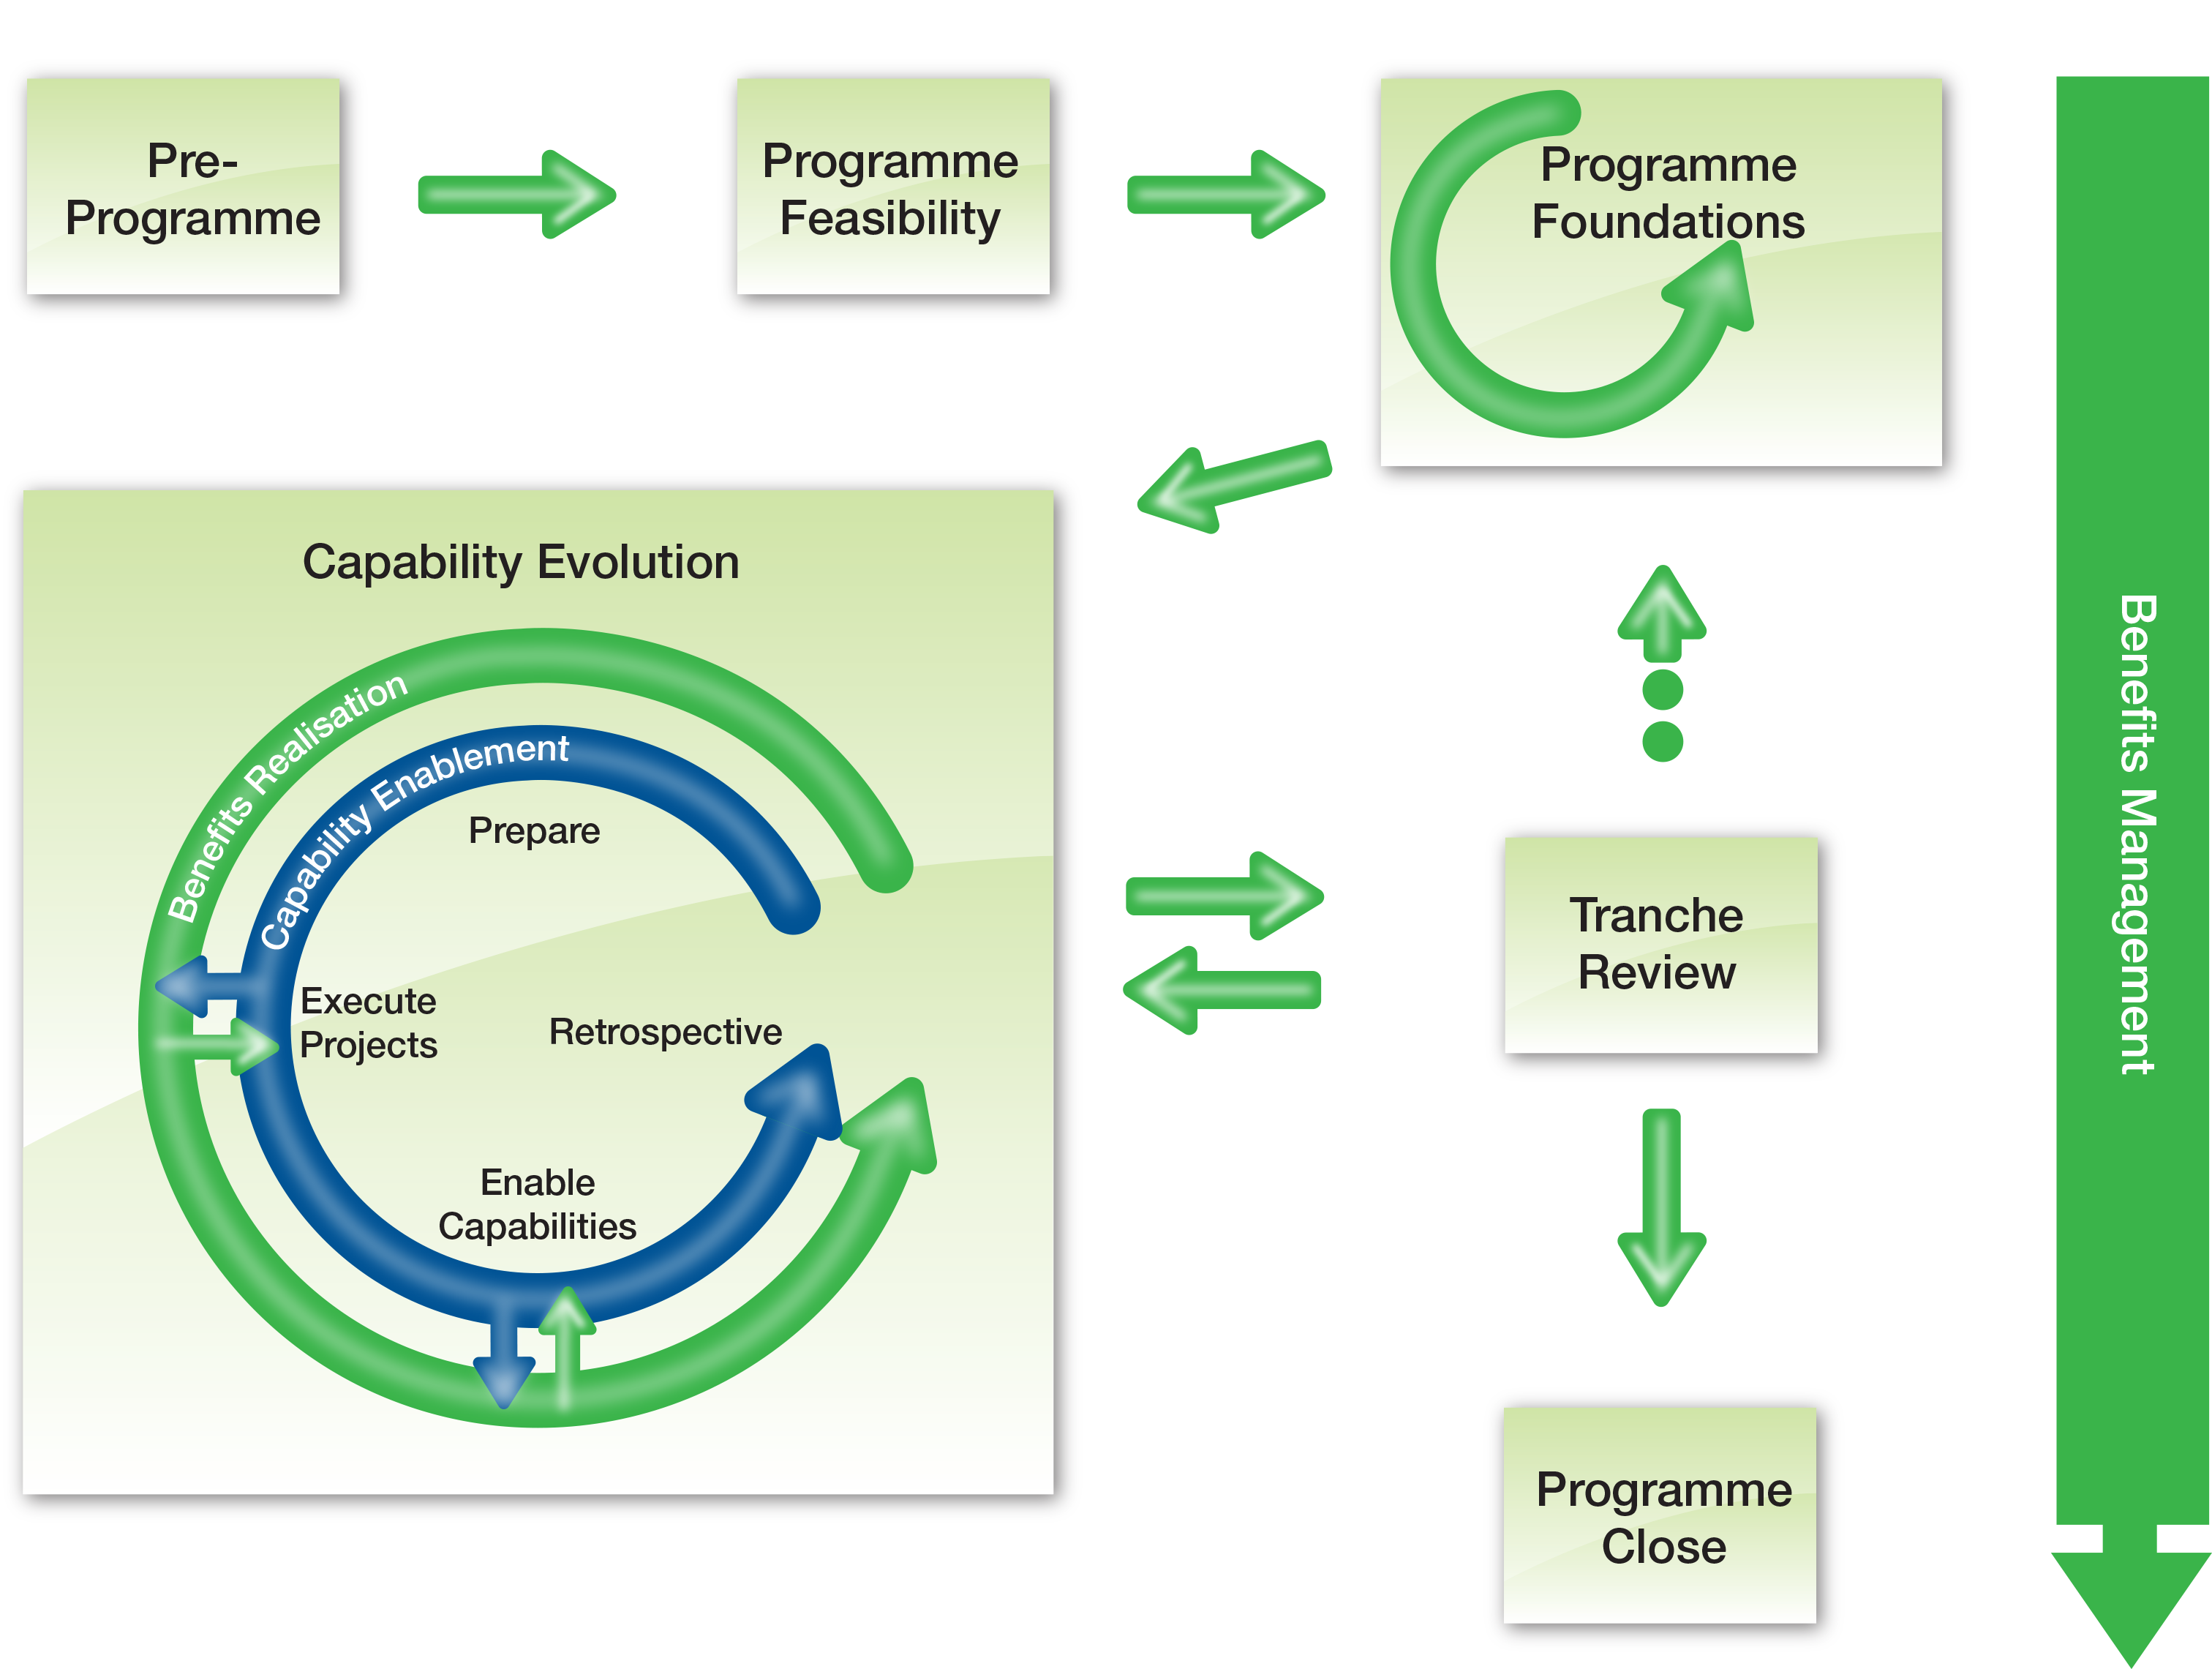 1598049921_4 - Programme Lifecycle pg17.png